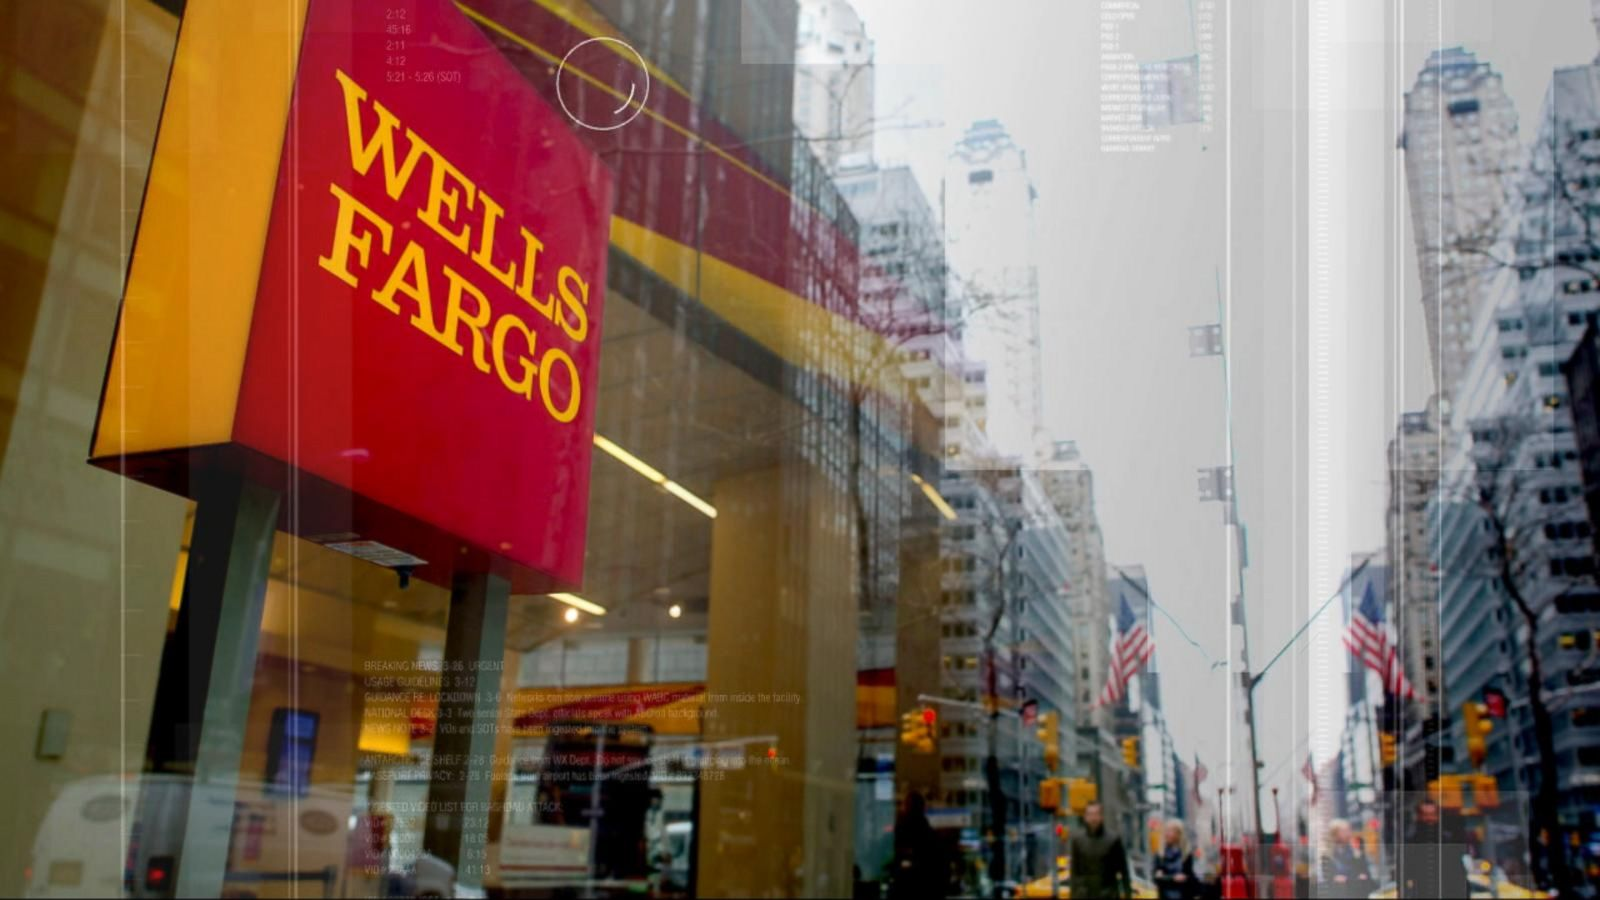 VIDEO: California Launching a Criminal Investigation Against Wells Fargo